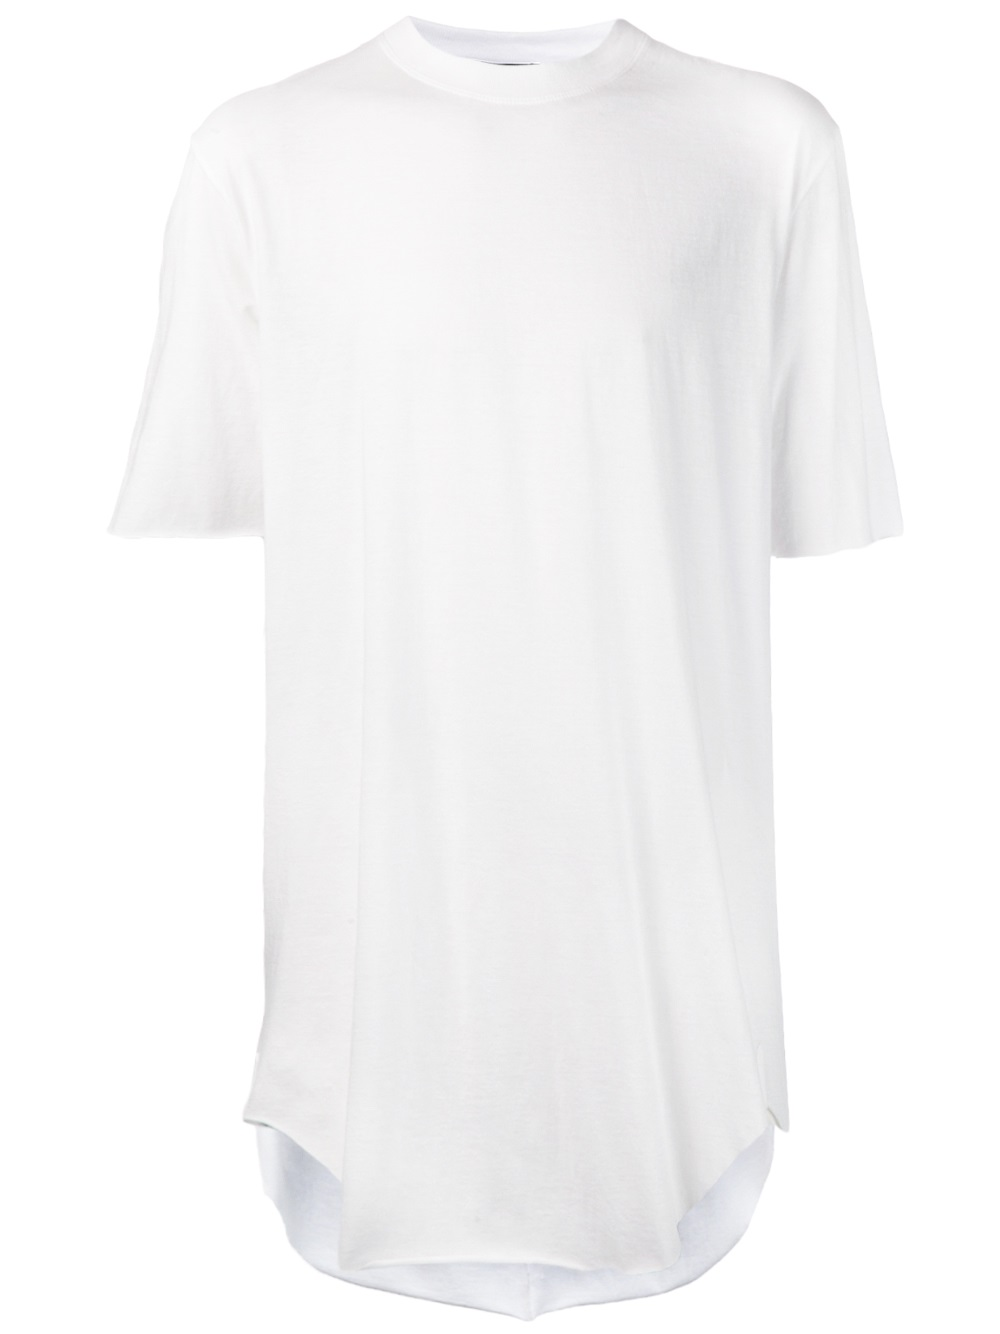 Wholesale Adult % Cotton T-Shirts. available up to size 5XL. Gildan Heavy Cotton™ oz. T-Shirt Style #G From $ 60 Colors. available up to size 6XL. Fruit of the Loom Style G, White and Colors Style G, White and Colors Style G, White and Colors Style 29M, White and Colors Style , White and Colors.